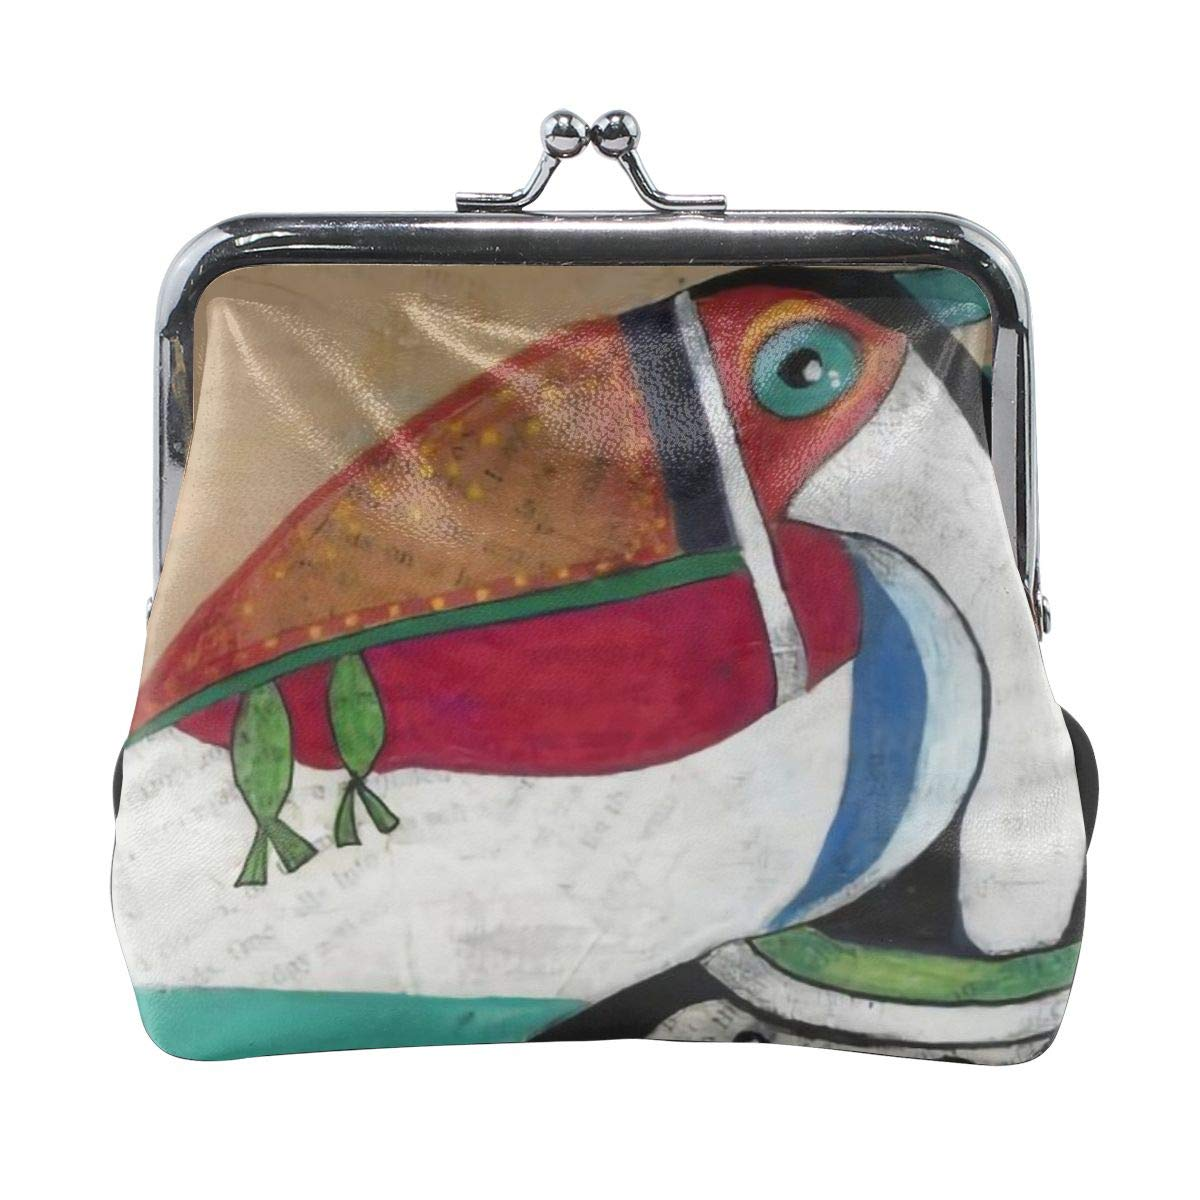 Pelican Eats Fish Sea Vintage Pouch Girl Kiss-lock Change Purse Wallets Buckle Leather Coin Purses Key Woman Printed